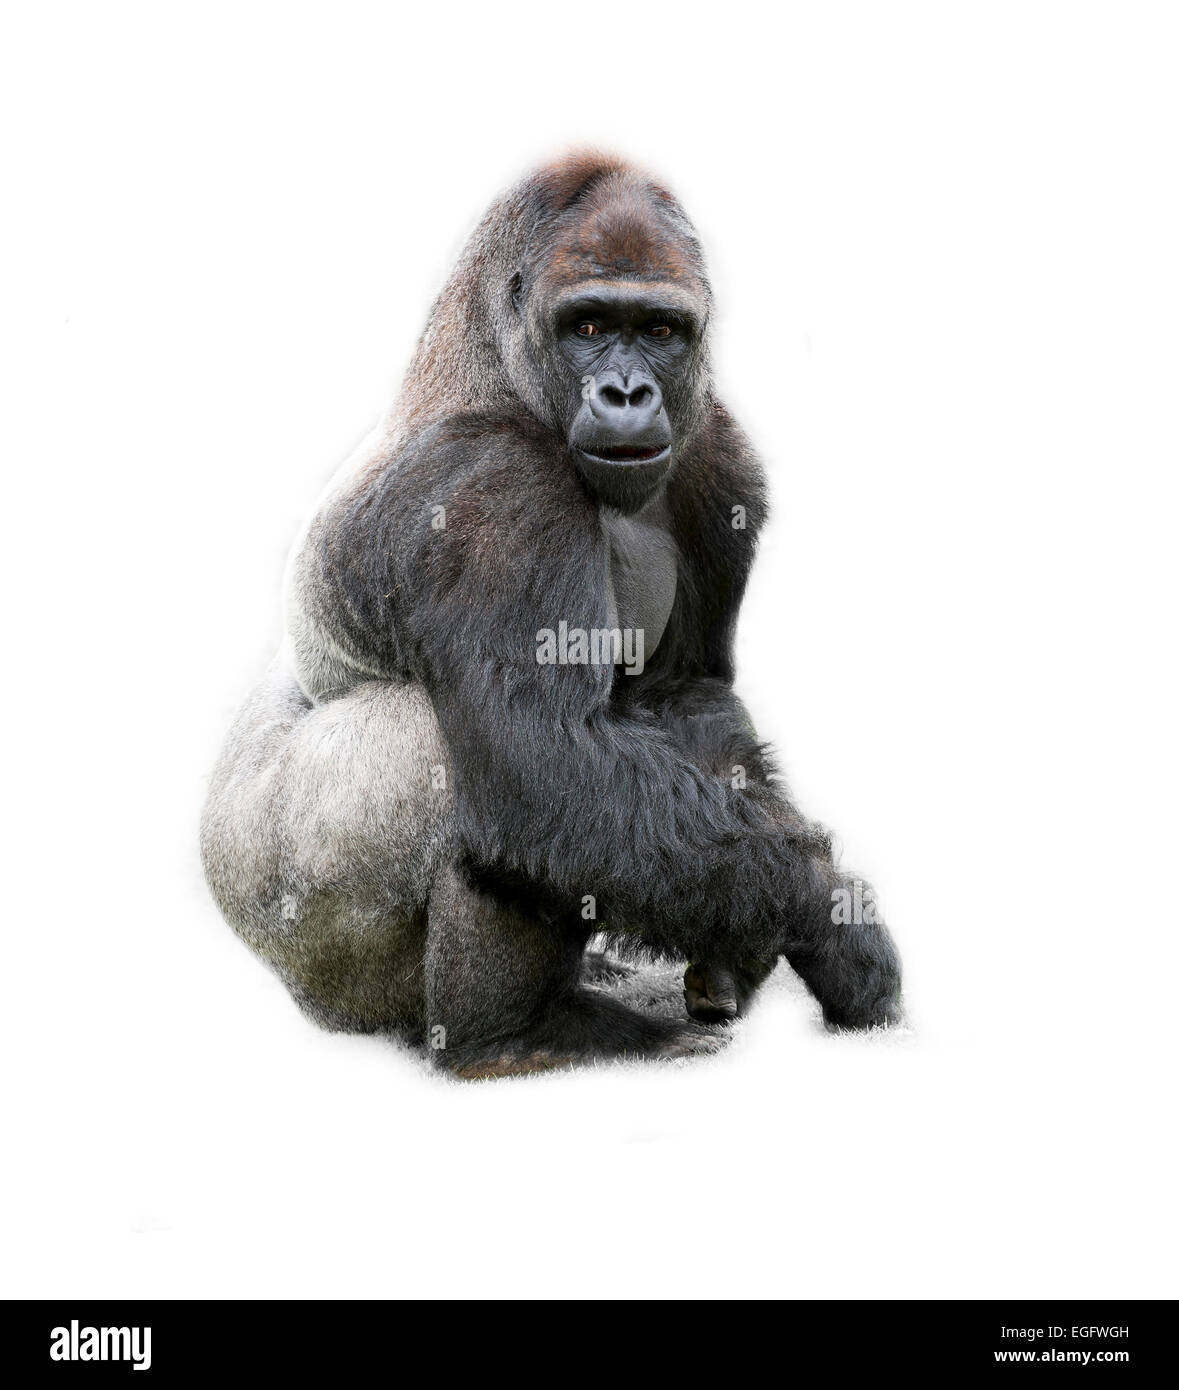 Gorilla Cut Out Stock Images & Pictures - Alamy